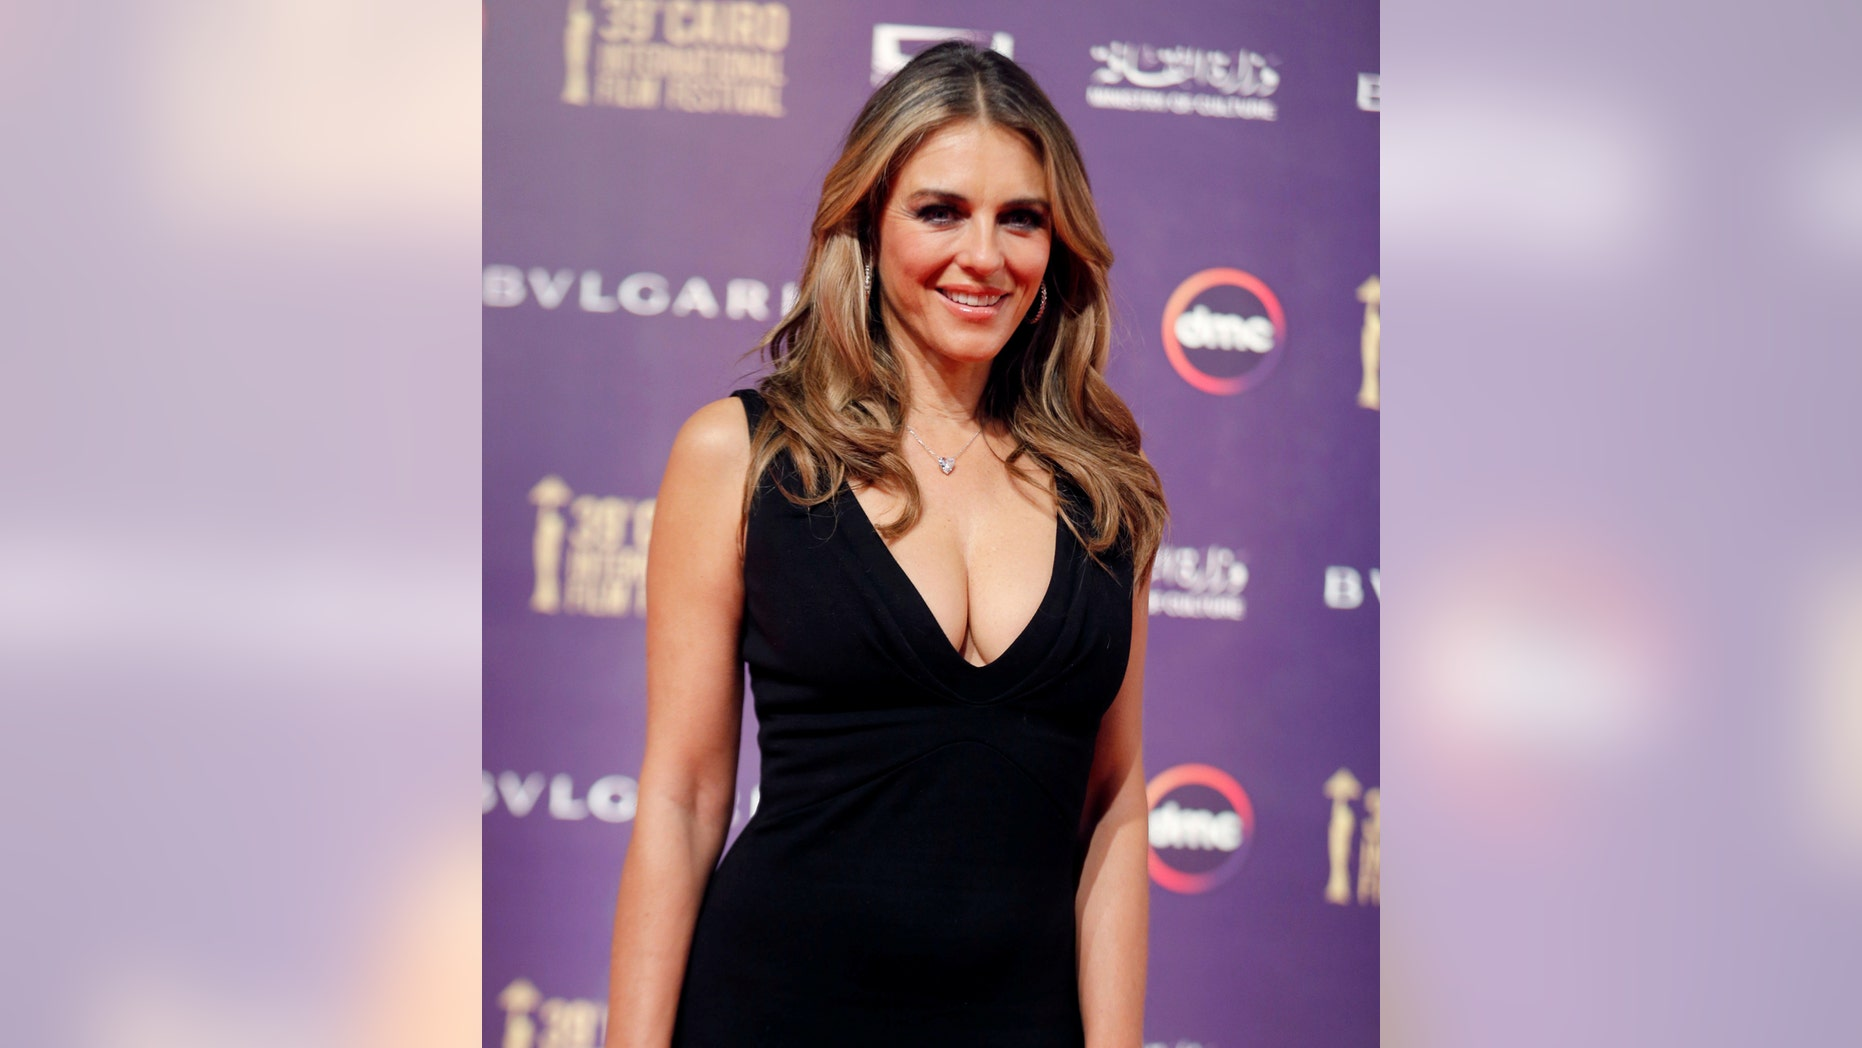 British actor Elizabeth Hurley, seen above in November 2017, took some heat online for her cleavage-baring dress.